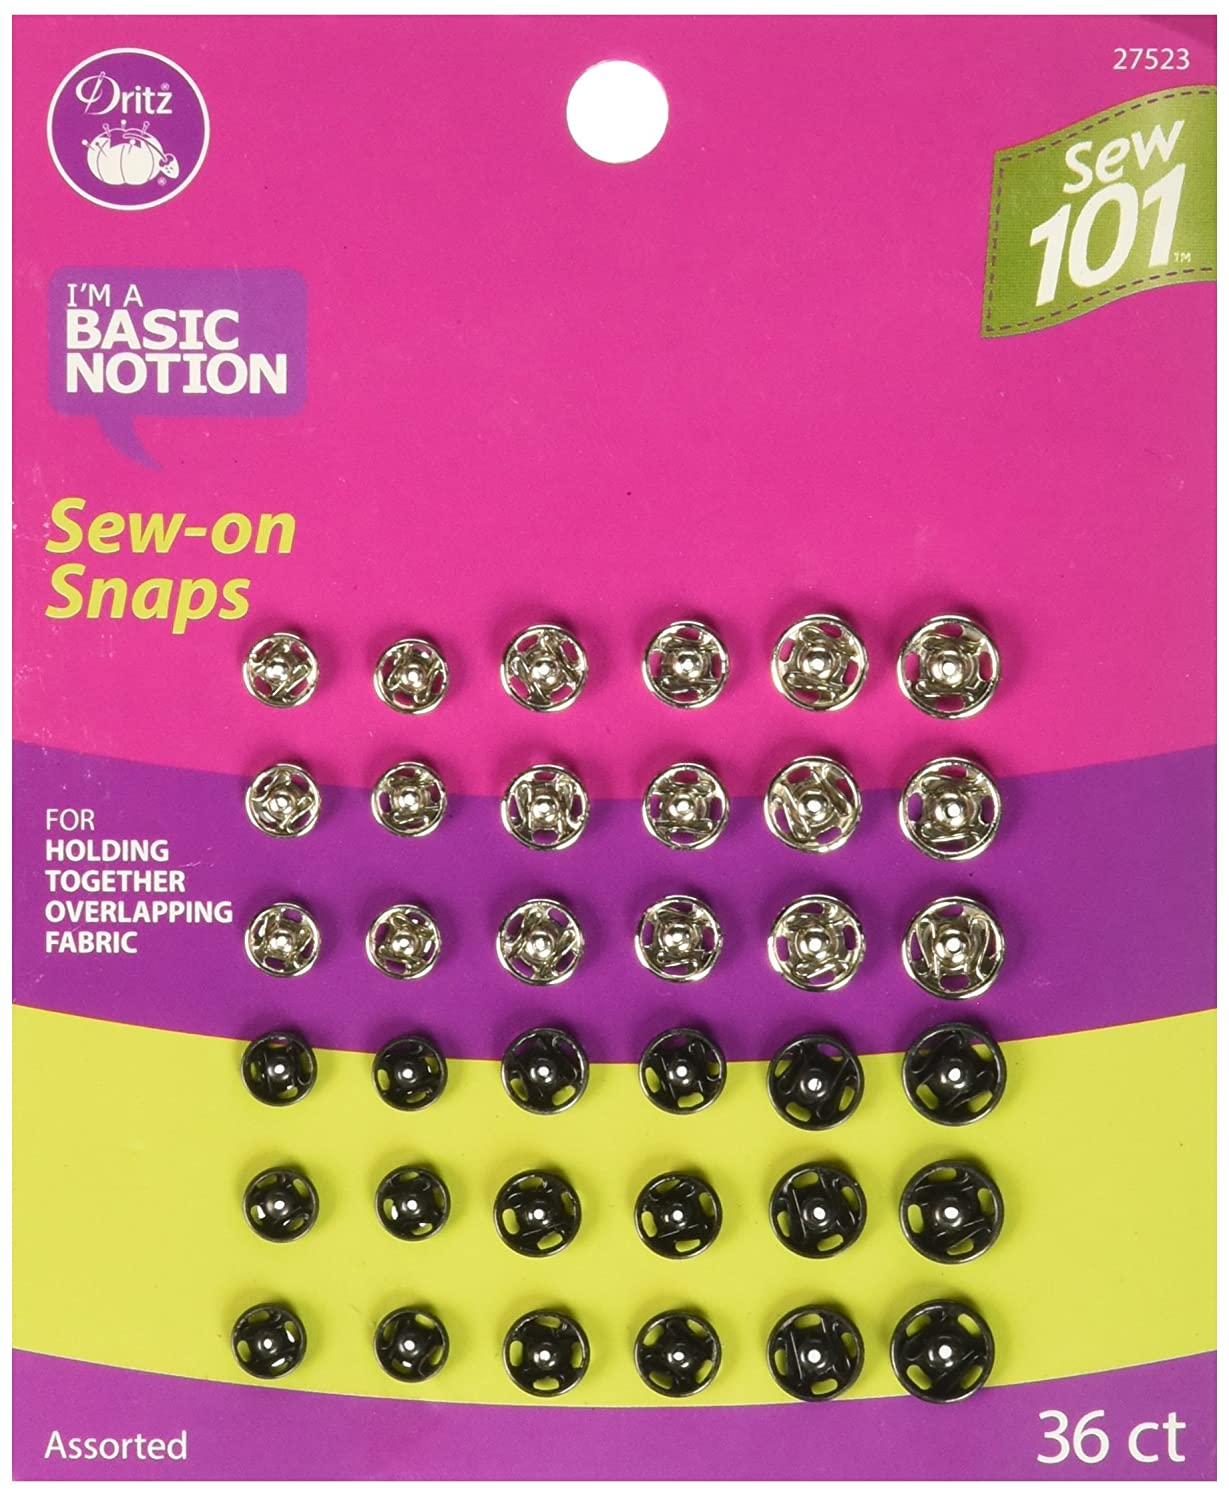 Dritz Sew 101 27523 Sew-On Snaps, Assorted Colors & Sizes (36-Sets)